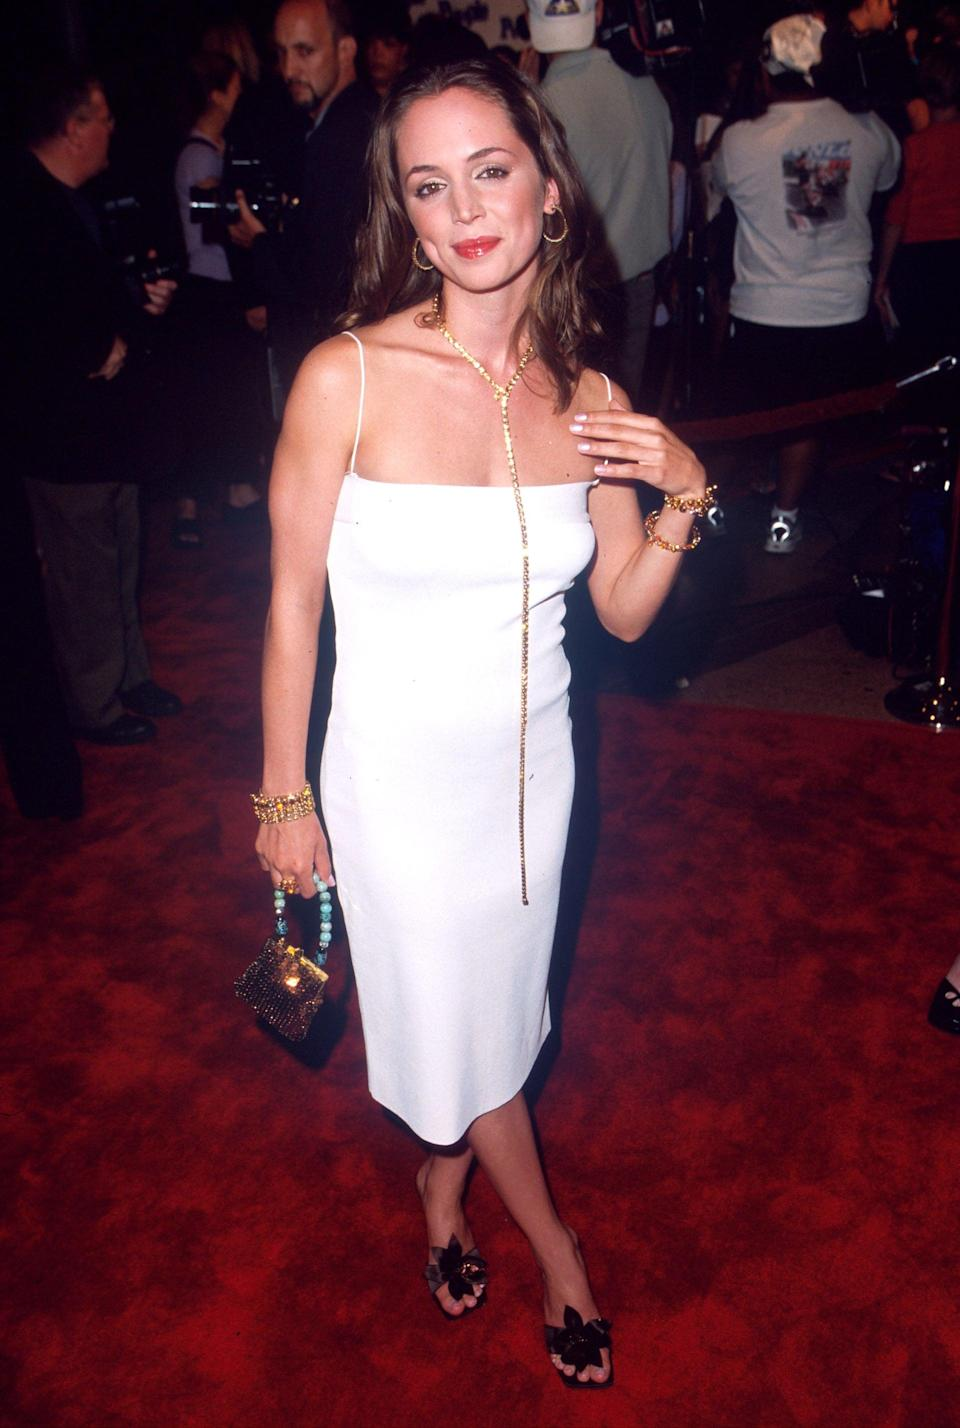 """<p>Eliza played Missy, who had a tough, edgy style in the film. But Eliza surprised in an elegant white slip sheath - a very <a class=""""link rapid-noclick-resp"""" href=""""https://www.popsugar.com/Kate-Moss"""" rel=""""nofollow noopener"""" target=""""_blank"""" data-ylk=""""slk:Kate Moss"""">Kate Moss</a> '90s reference - that she then jazzed up with accessories that spoke to the decade. Eliza carried a mini crystal-studded purse with a turquoise beaded handle, wore brown satin heels with a flower adornment, and finished the outfit with a matching gold hoop and drop necklace set. Bangles were the finishing touch.</p>"""